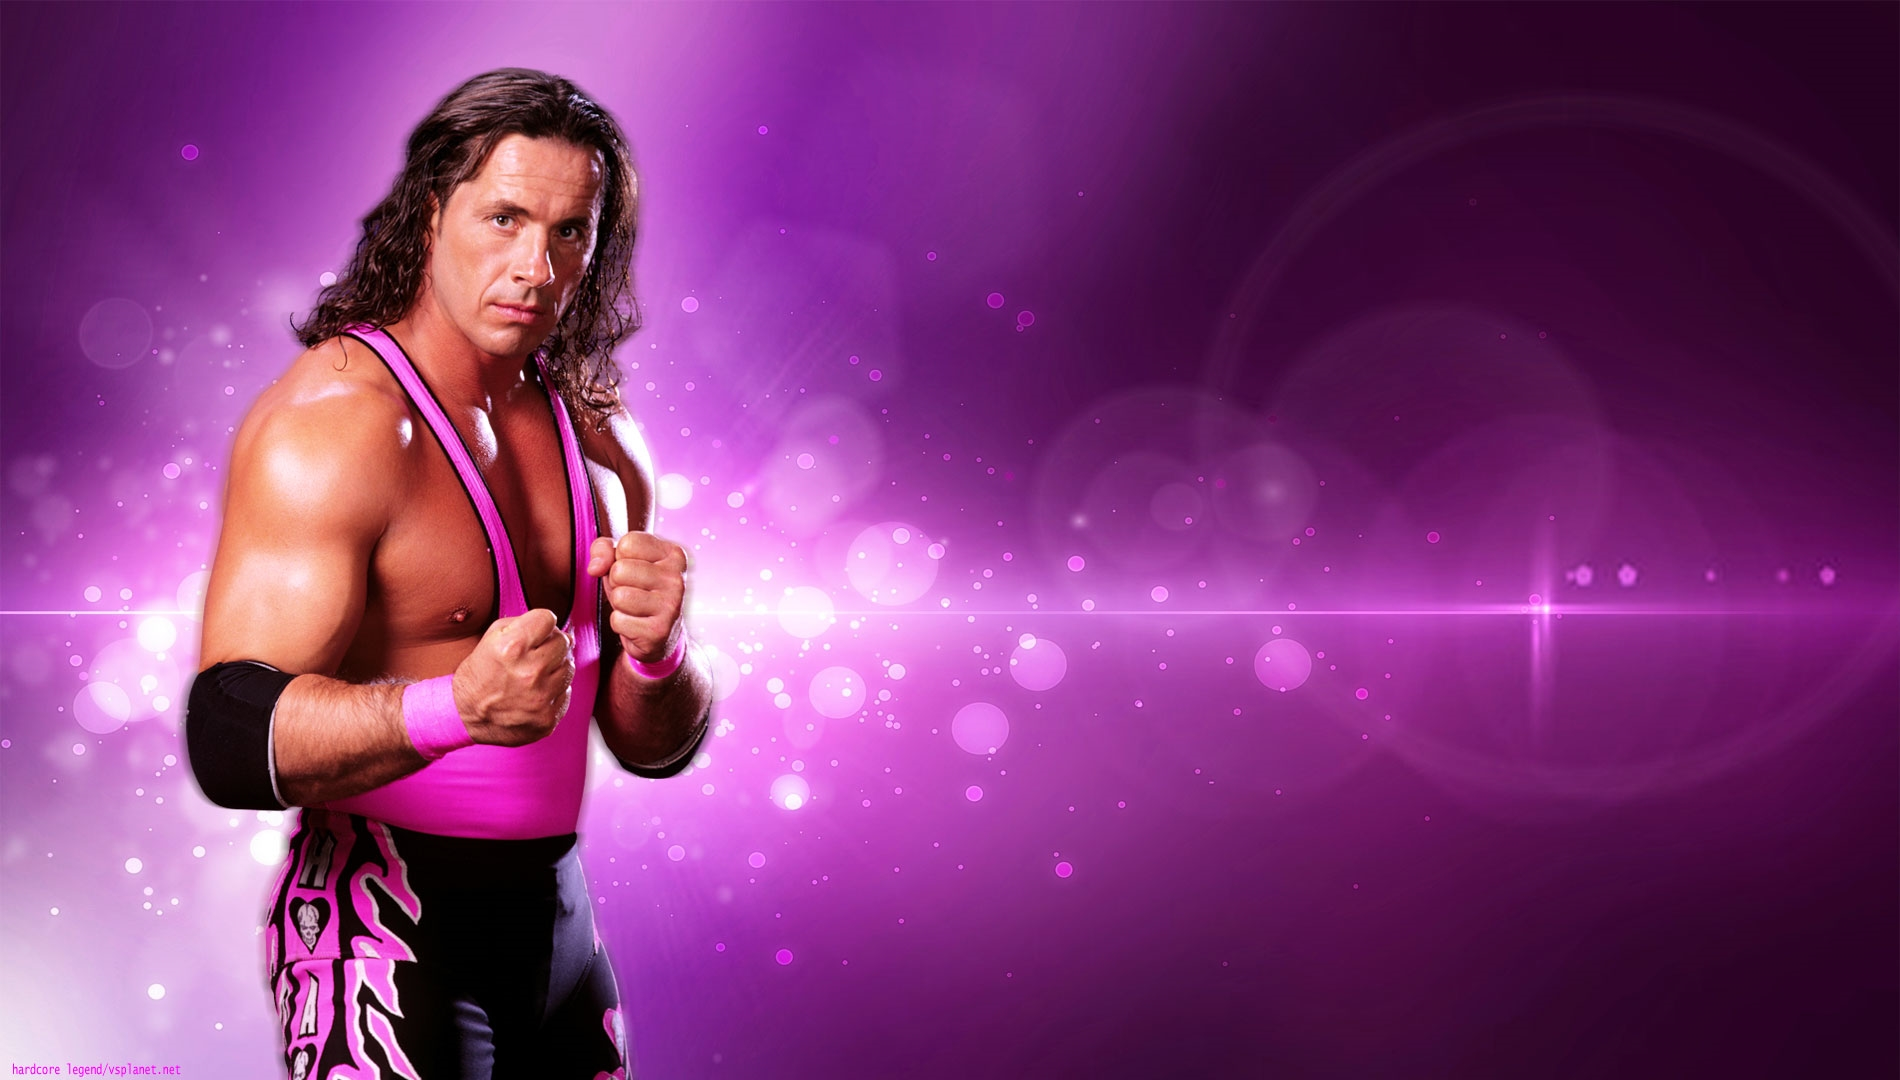 Bret Hart Pink Background